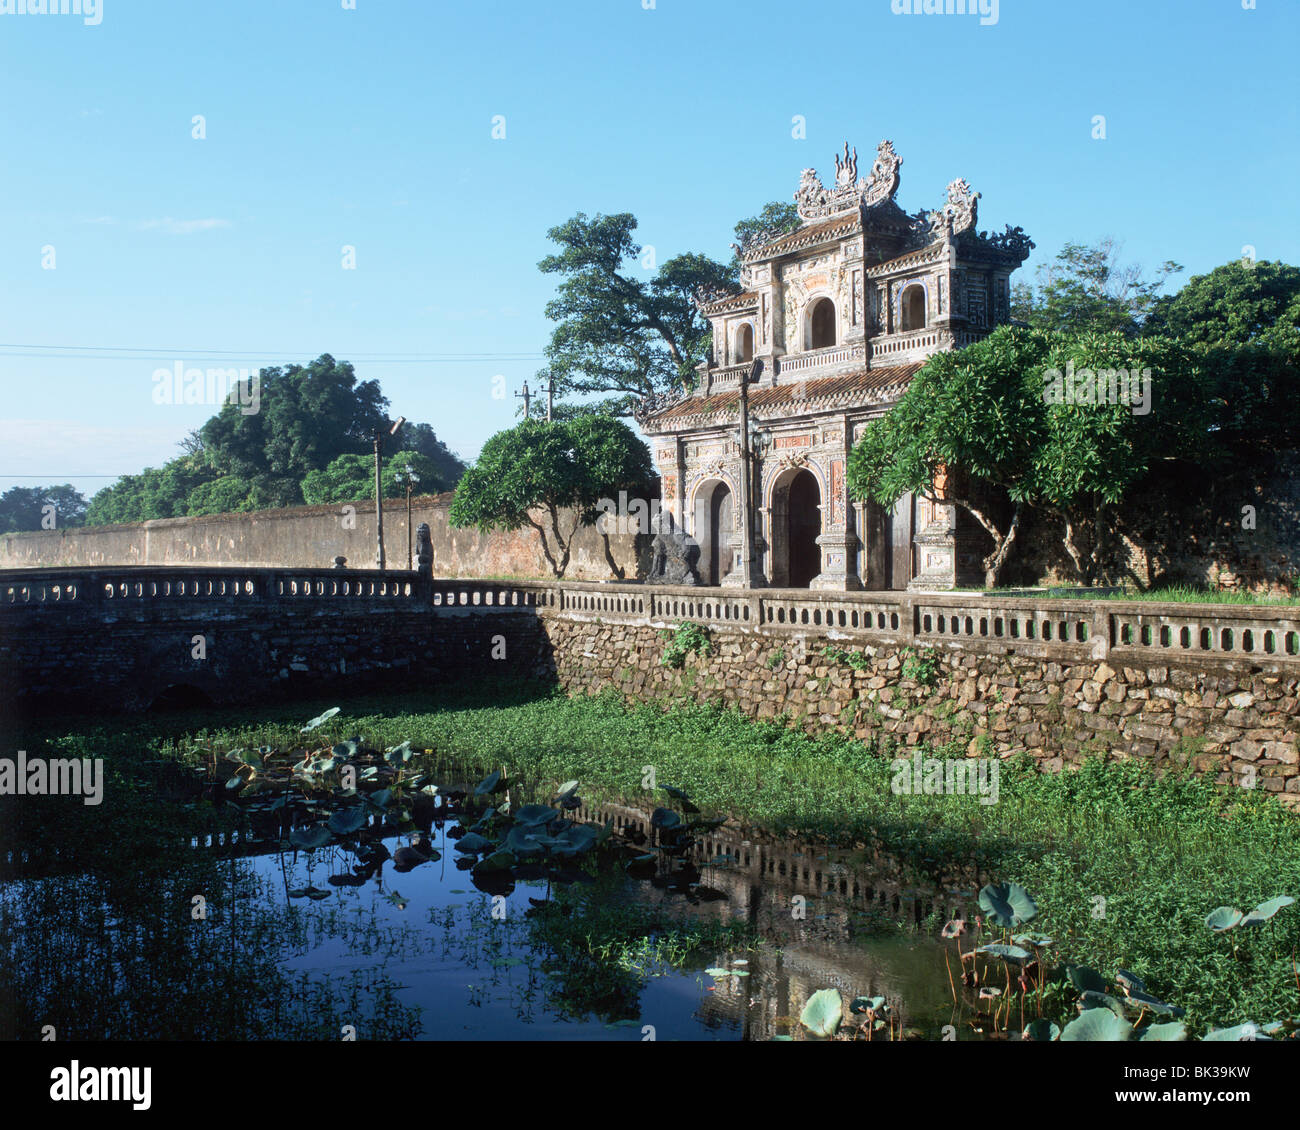 The Gate of Humanity (East Gate), The Citadel at Hue, UNESCO World Heritage Site, Vietnam, Indochina, Southeast - Stock Image